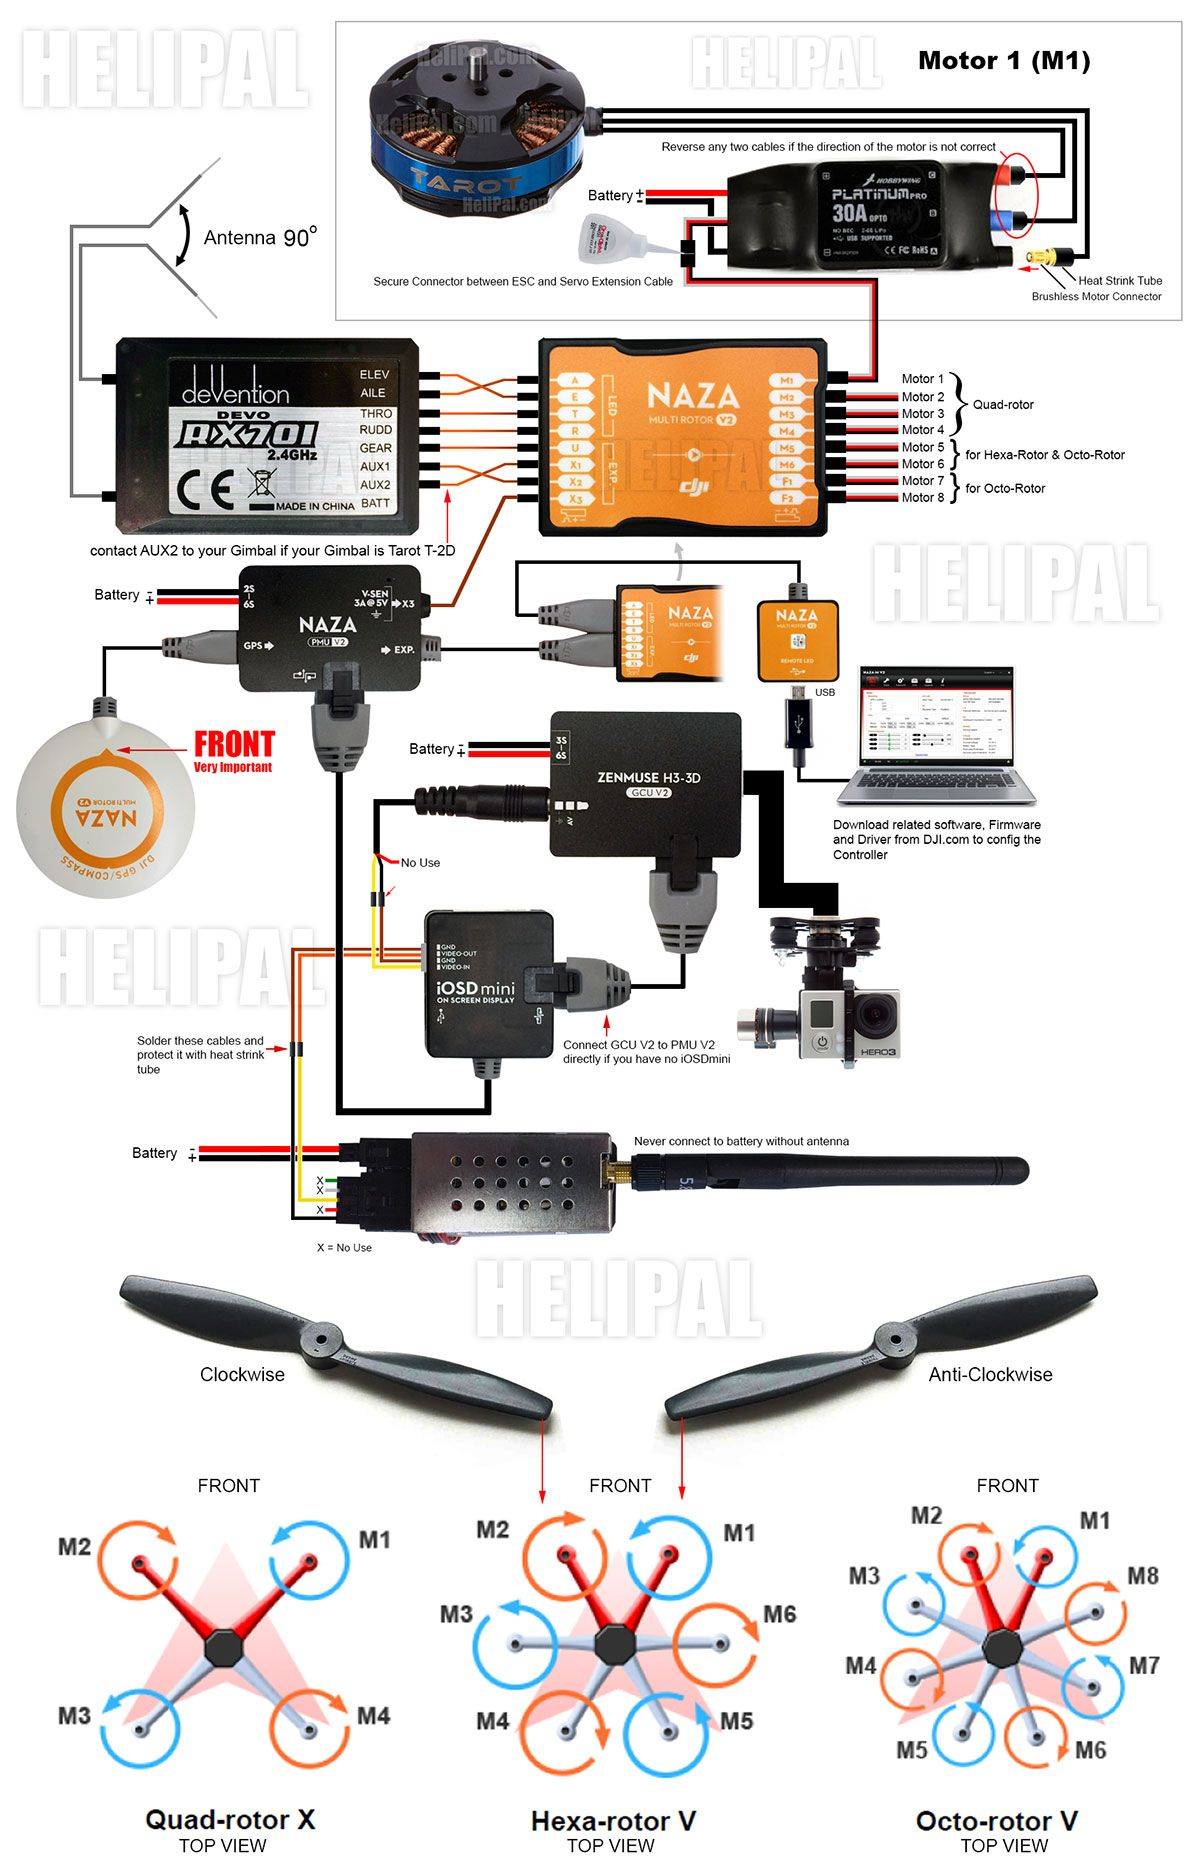 47e6d2b4d9f6fcd2266d3d10d9cddcee pack tarot hardware diagram 01 big jpg (1200�1869) quadcopter naza lite wiring diagram at n-0.co